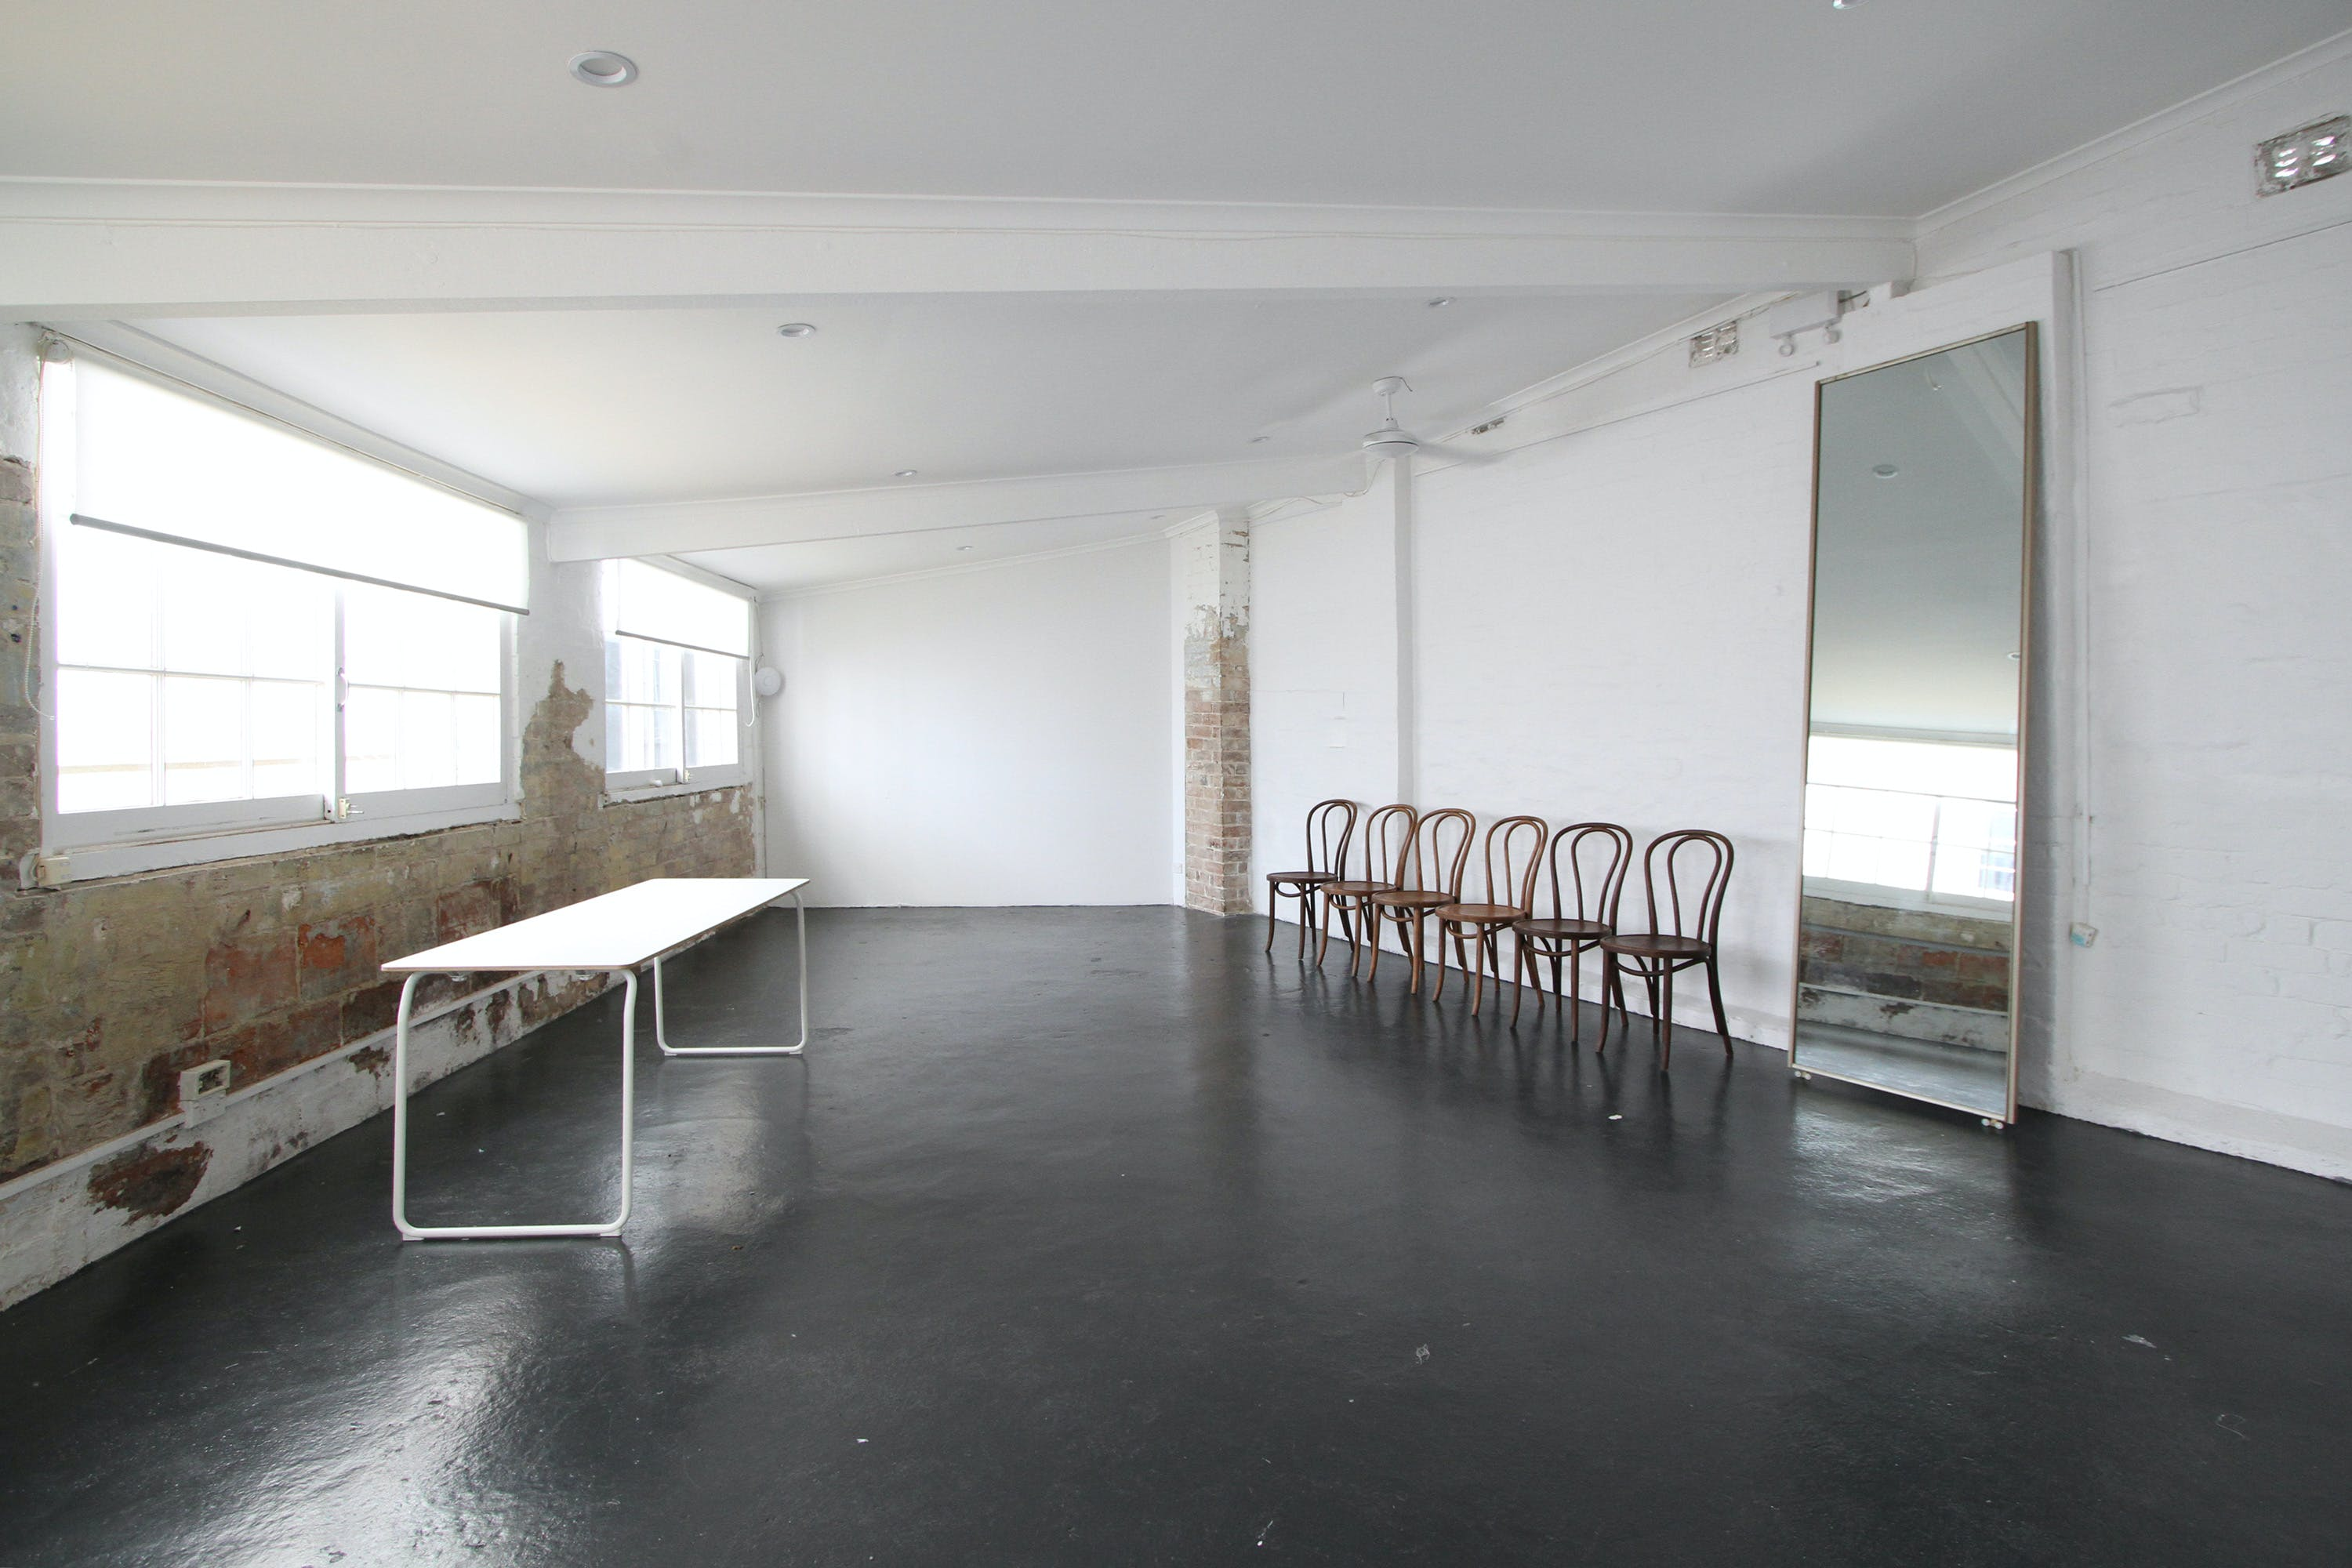 Annexe, multi-use area at Comber Street Studios, image 1